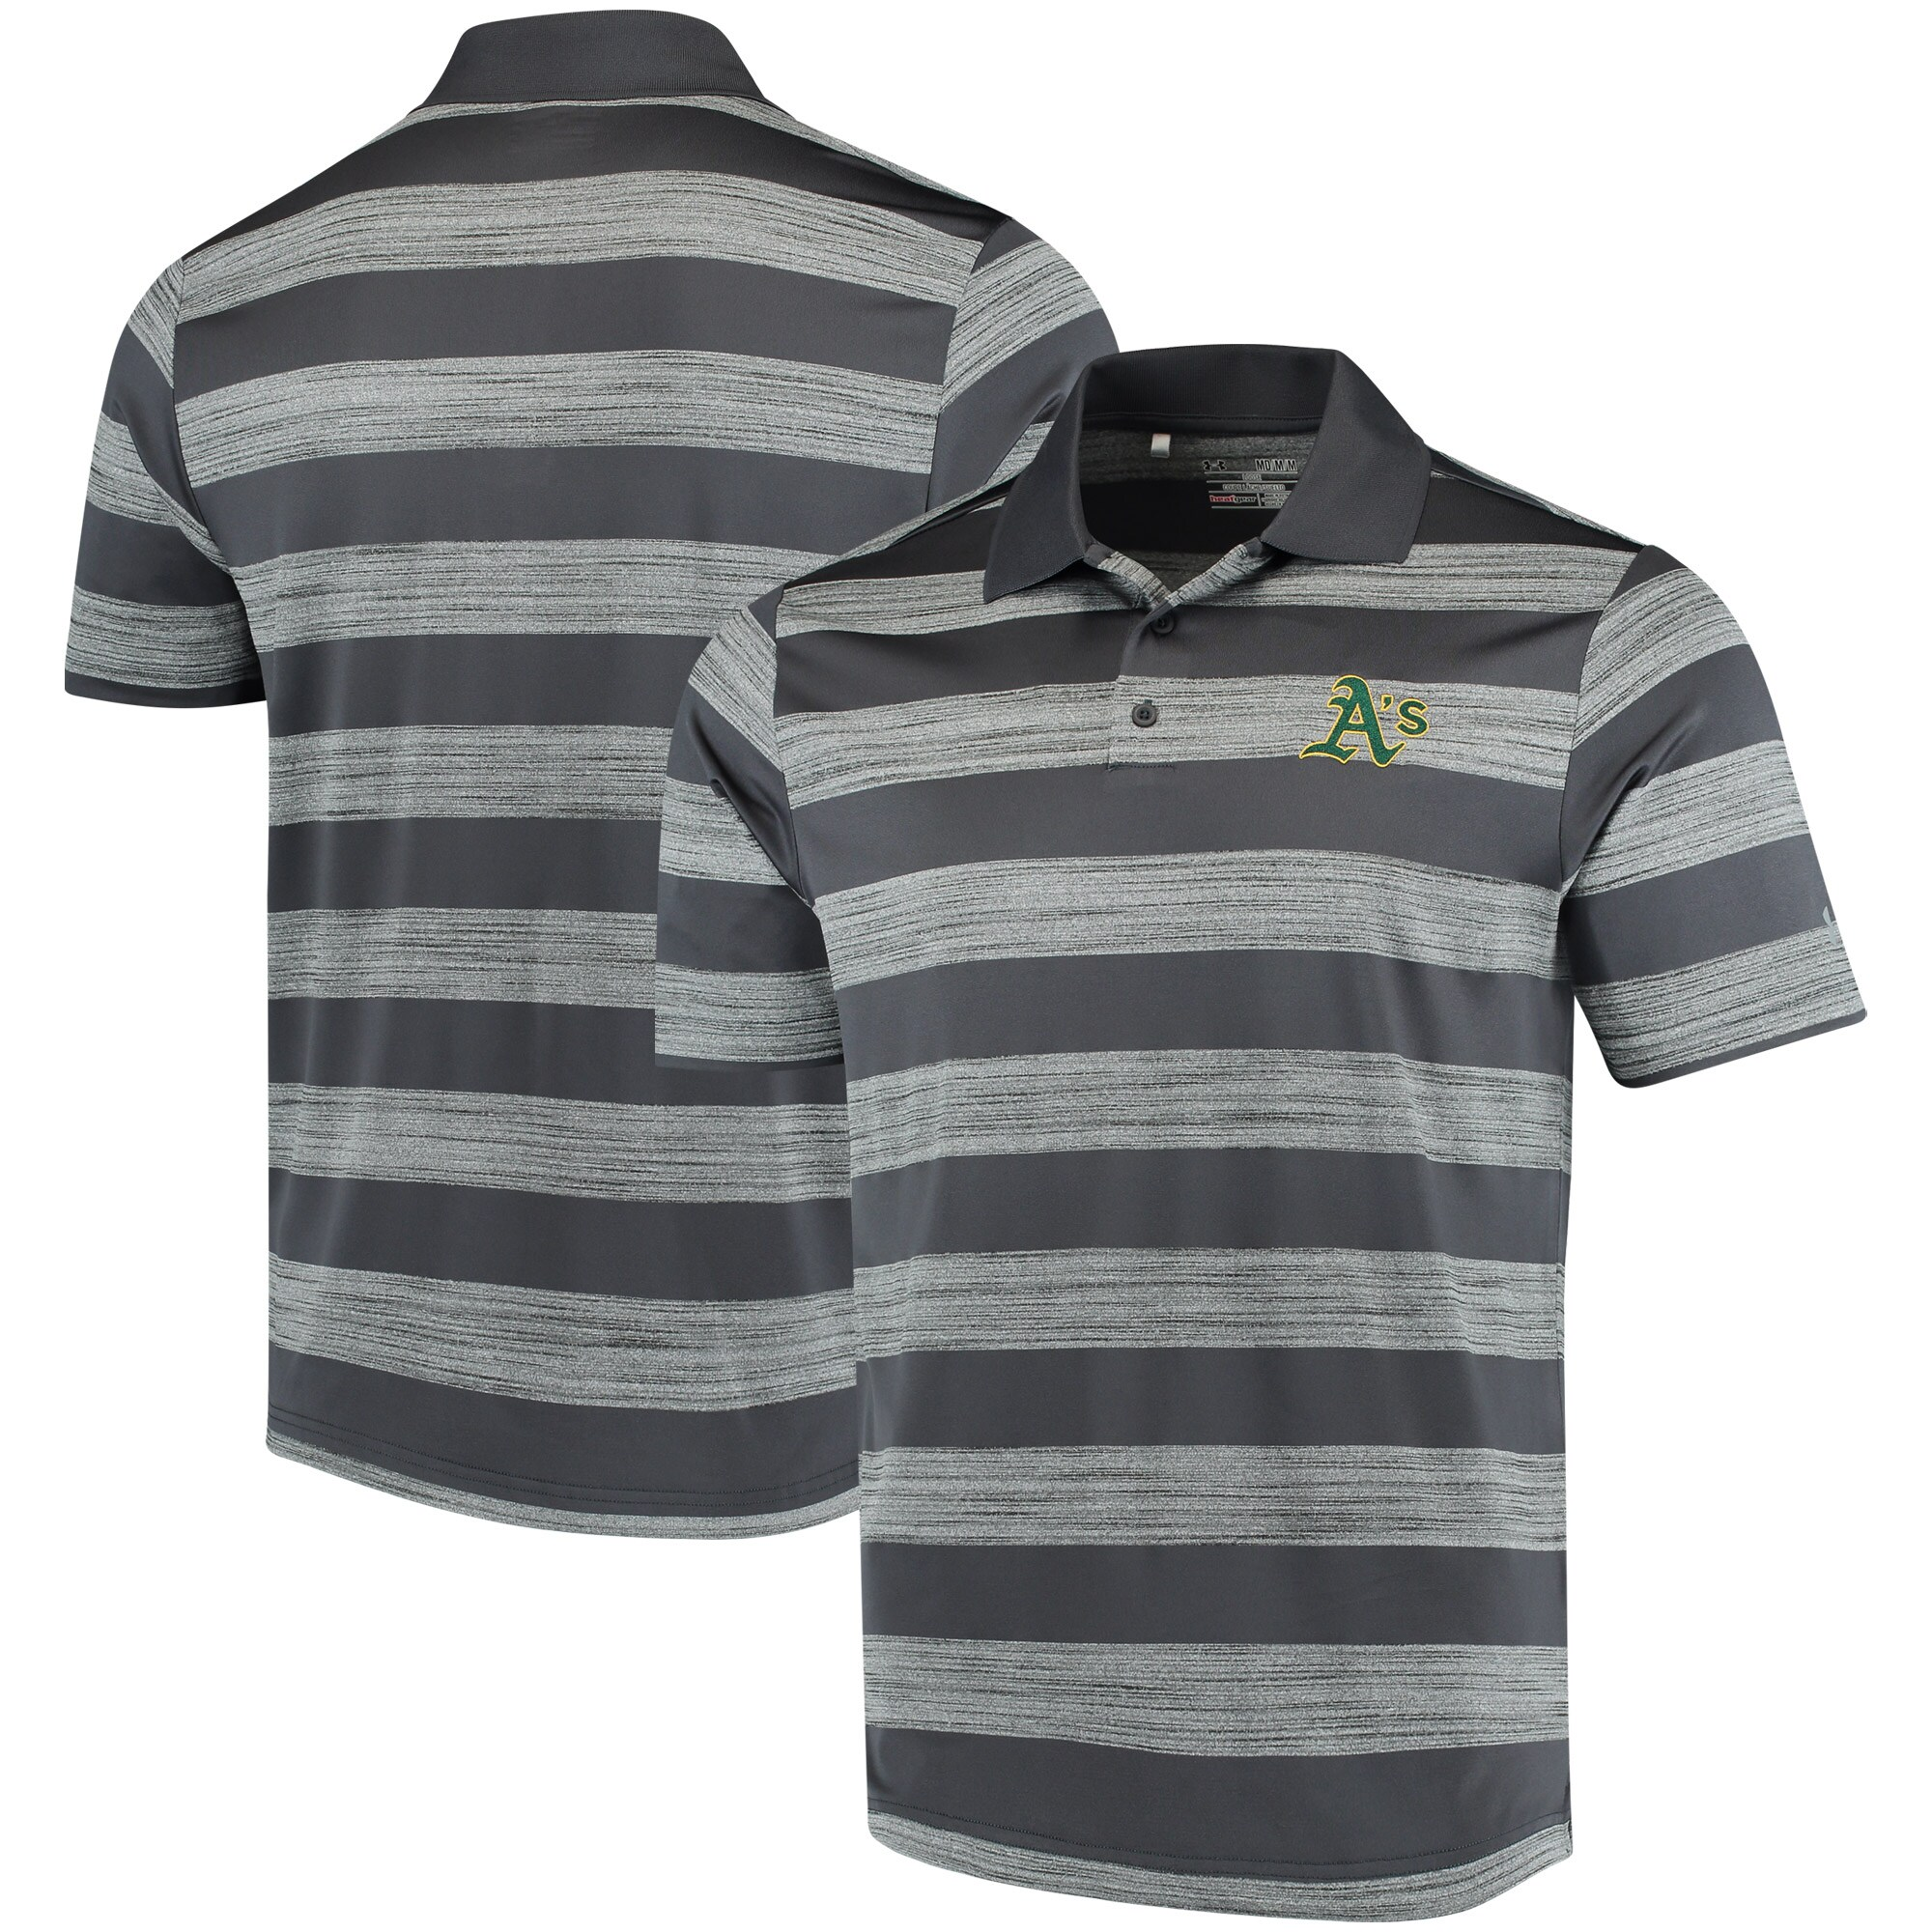 Oakland Athletics Under Armour Skyball Tonal Stripe Polo - Gray